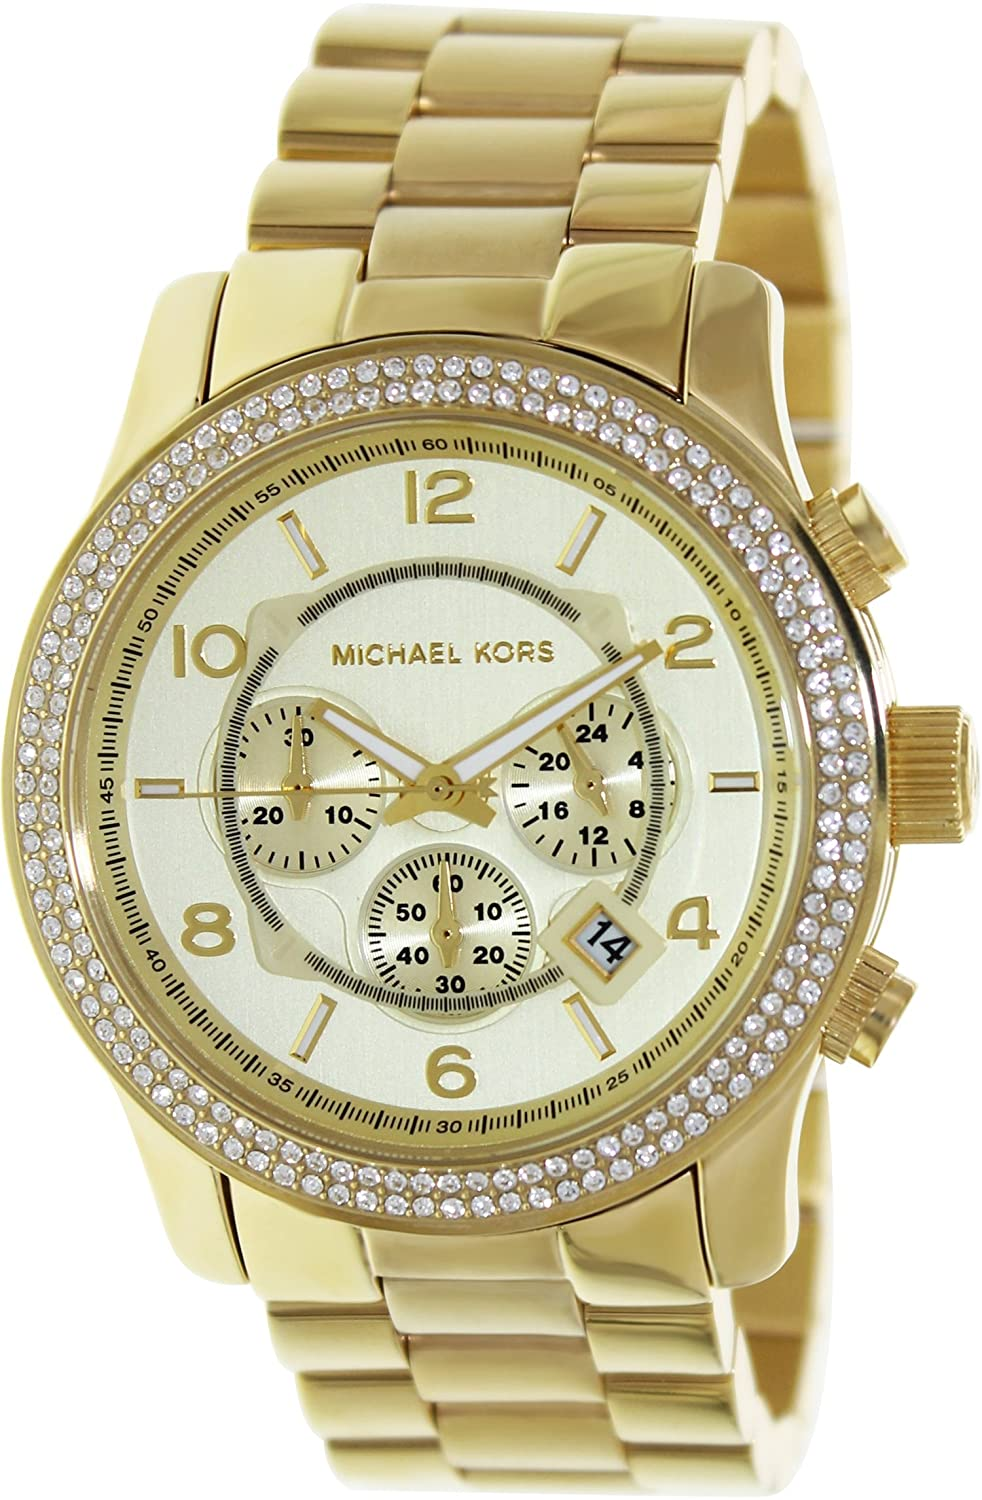 ad593484f8de Amazon.com  Michael Kors MK5575 Women s Watch  Michael Kors  Watches